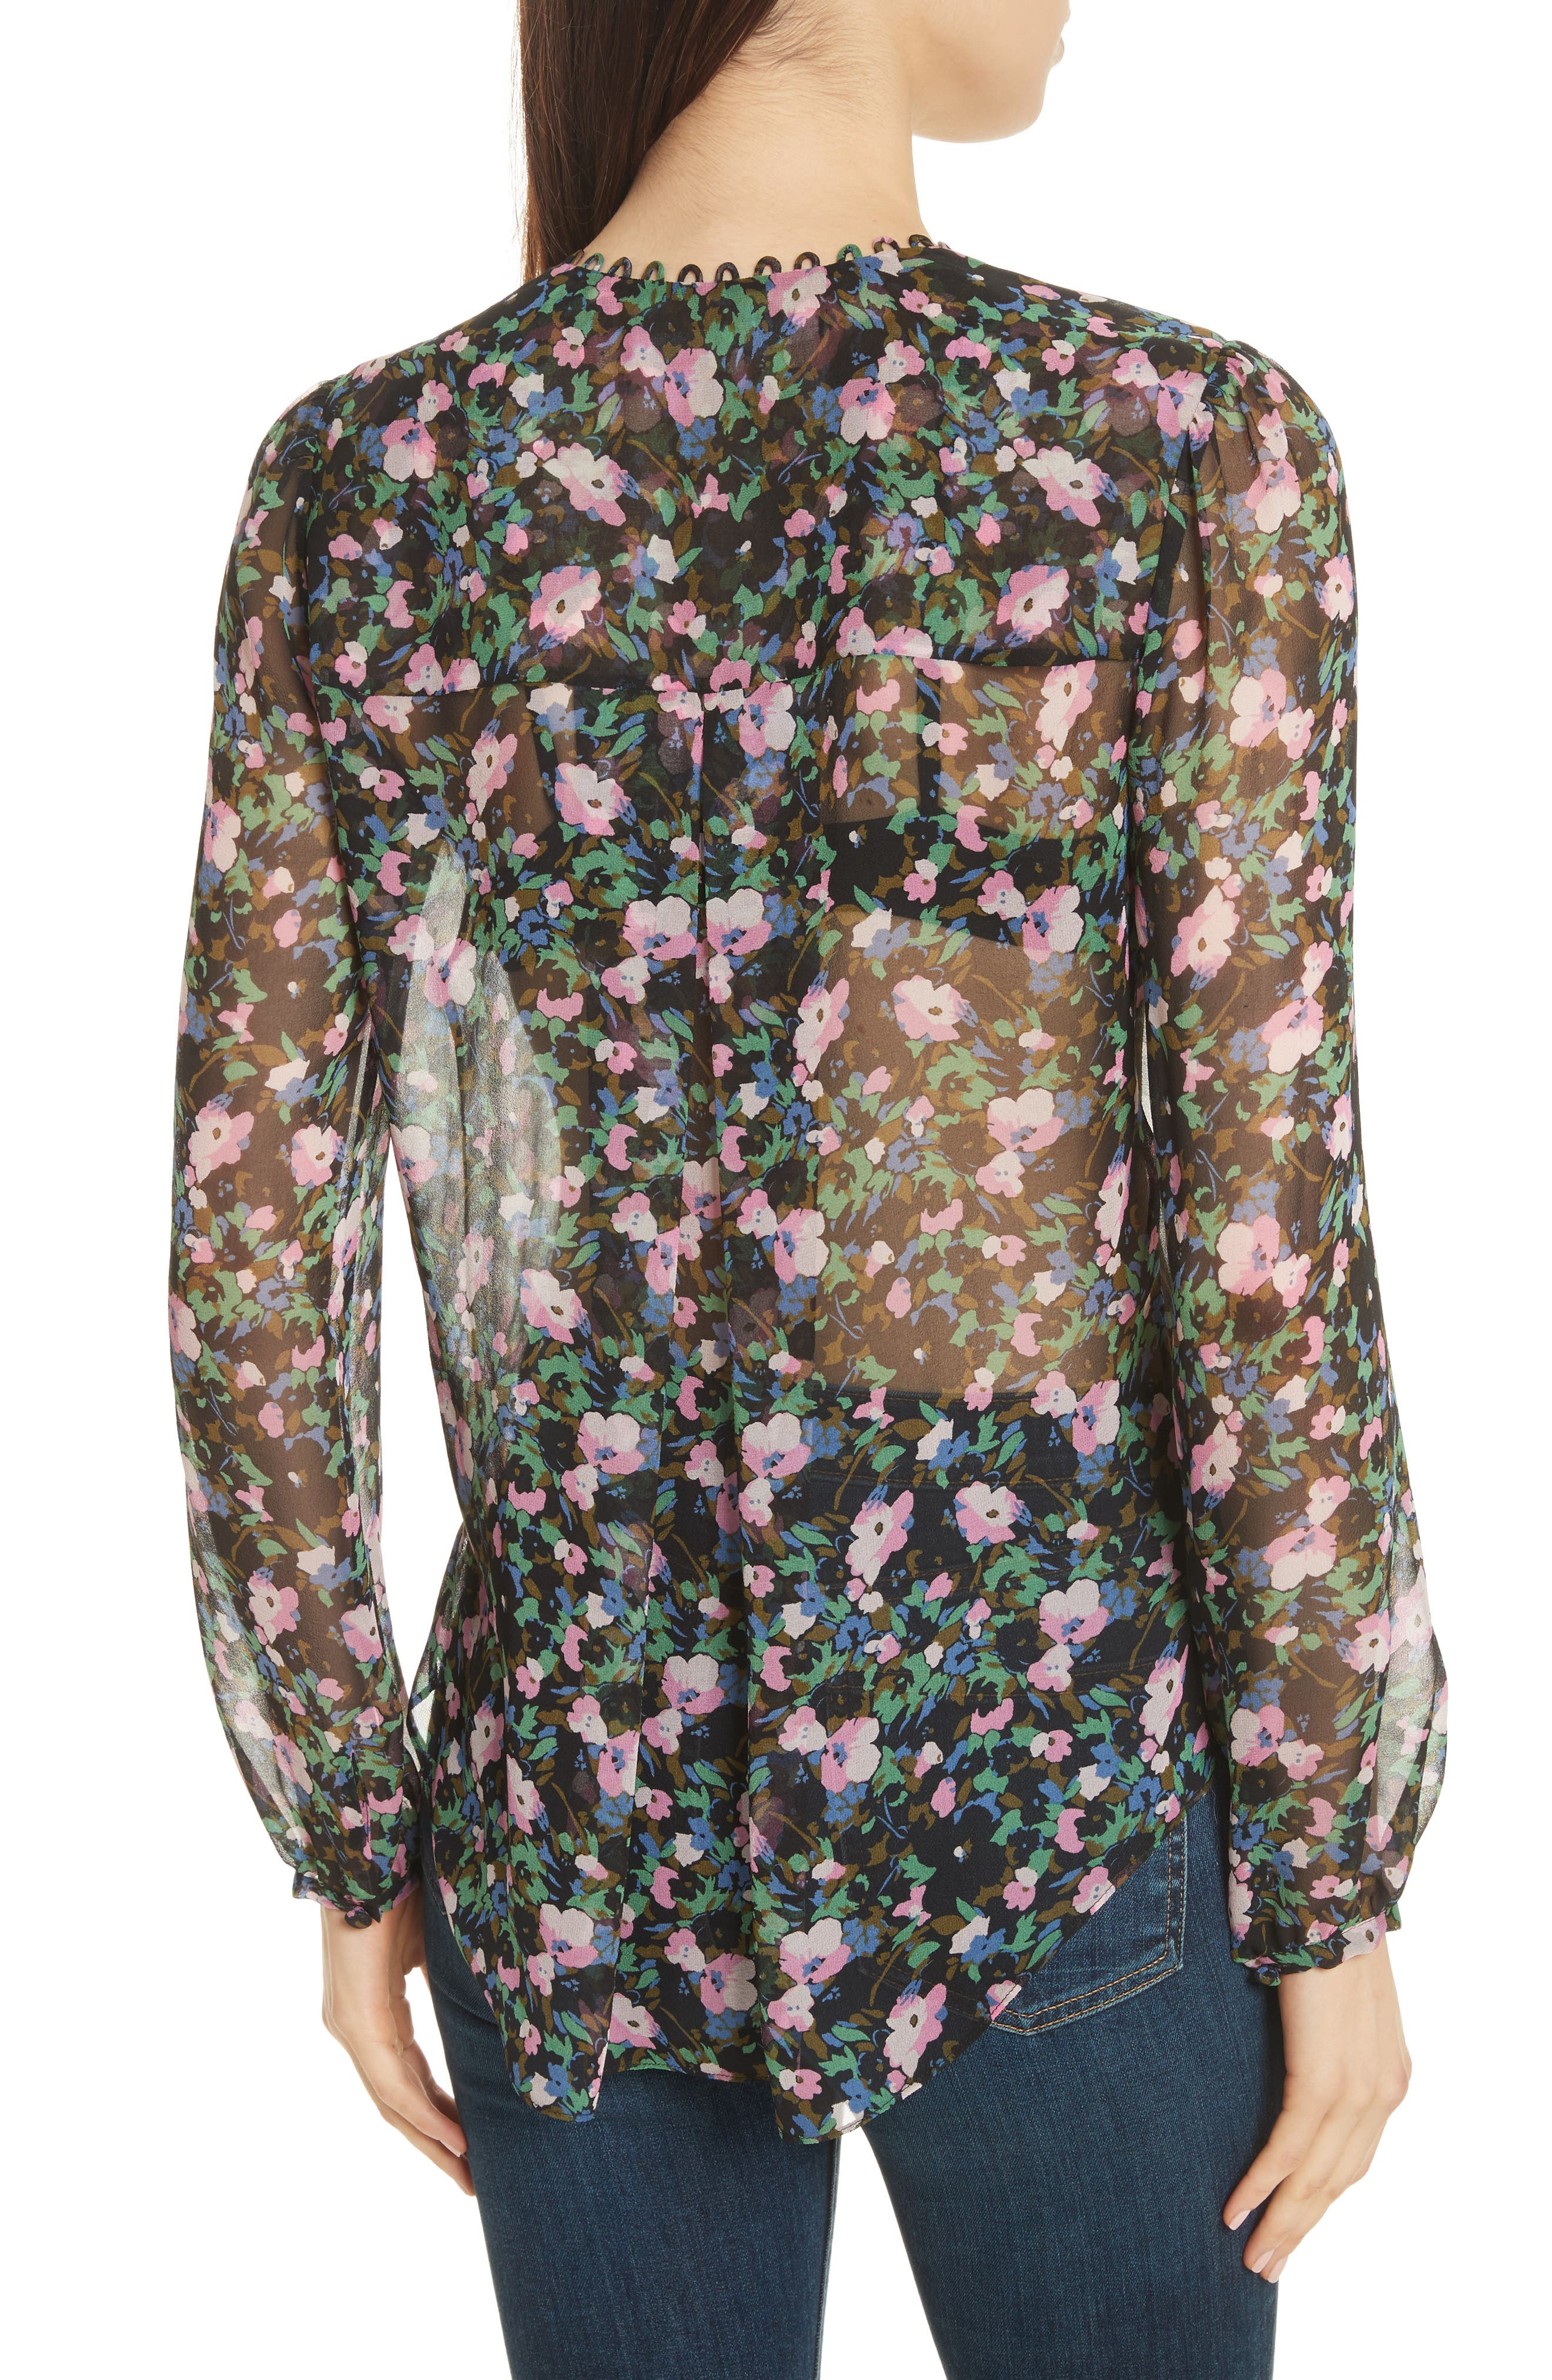 Lowell Floral Silk Blouse,                             Alternate thumbnail 2, color,                             415